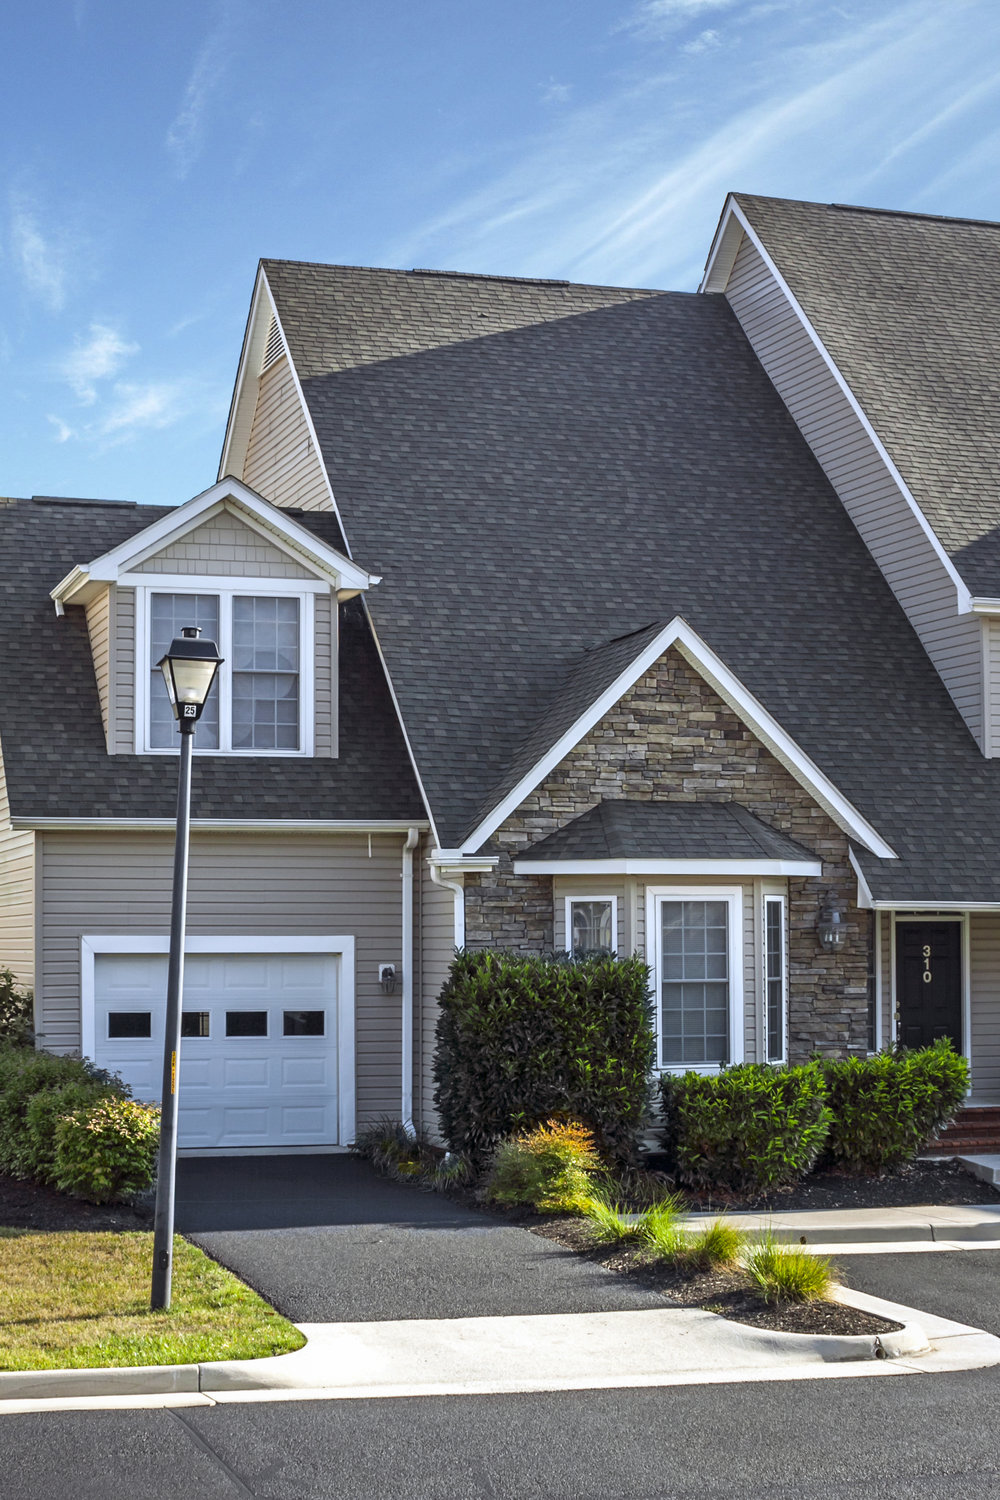 KW Townhomes_070714_1251_edited.jpg